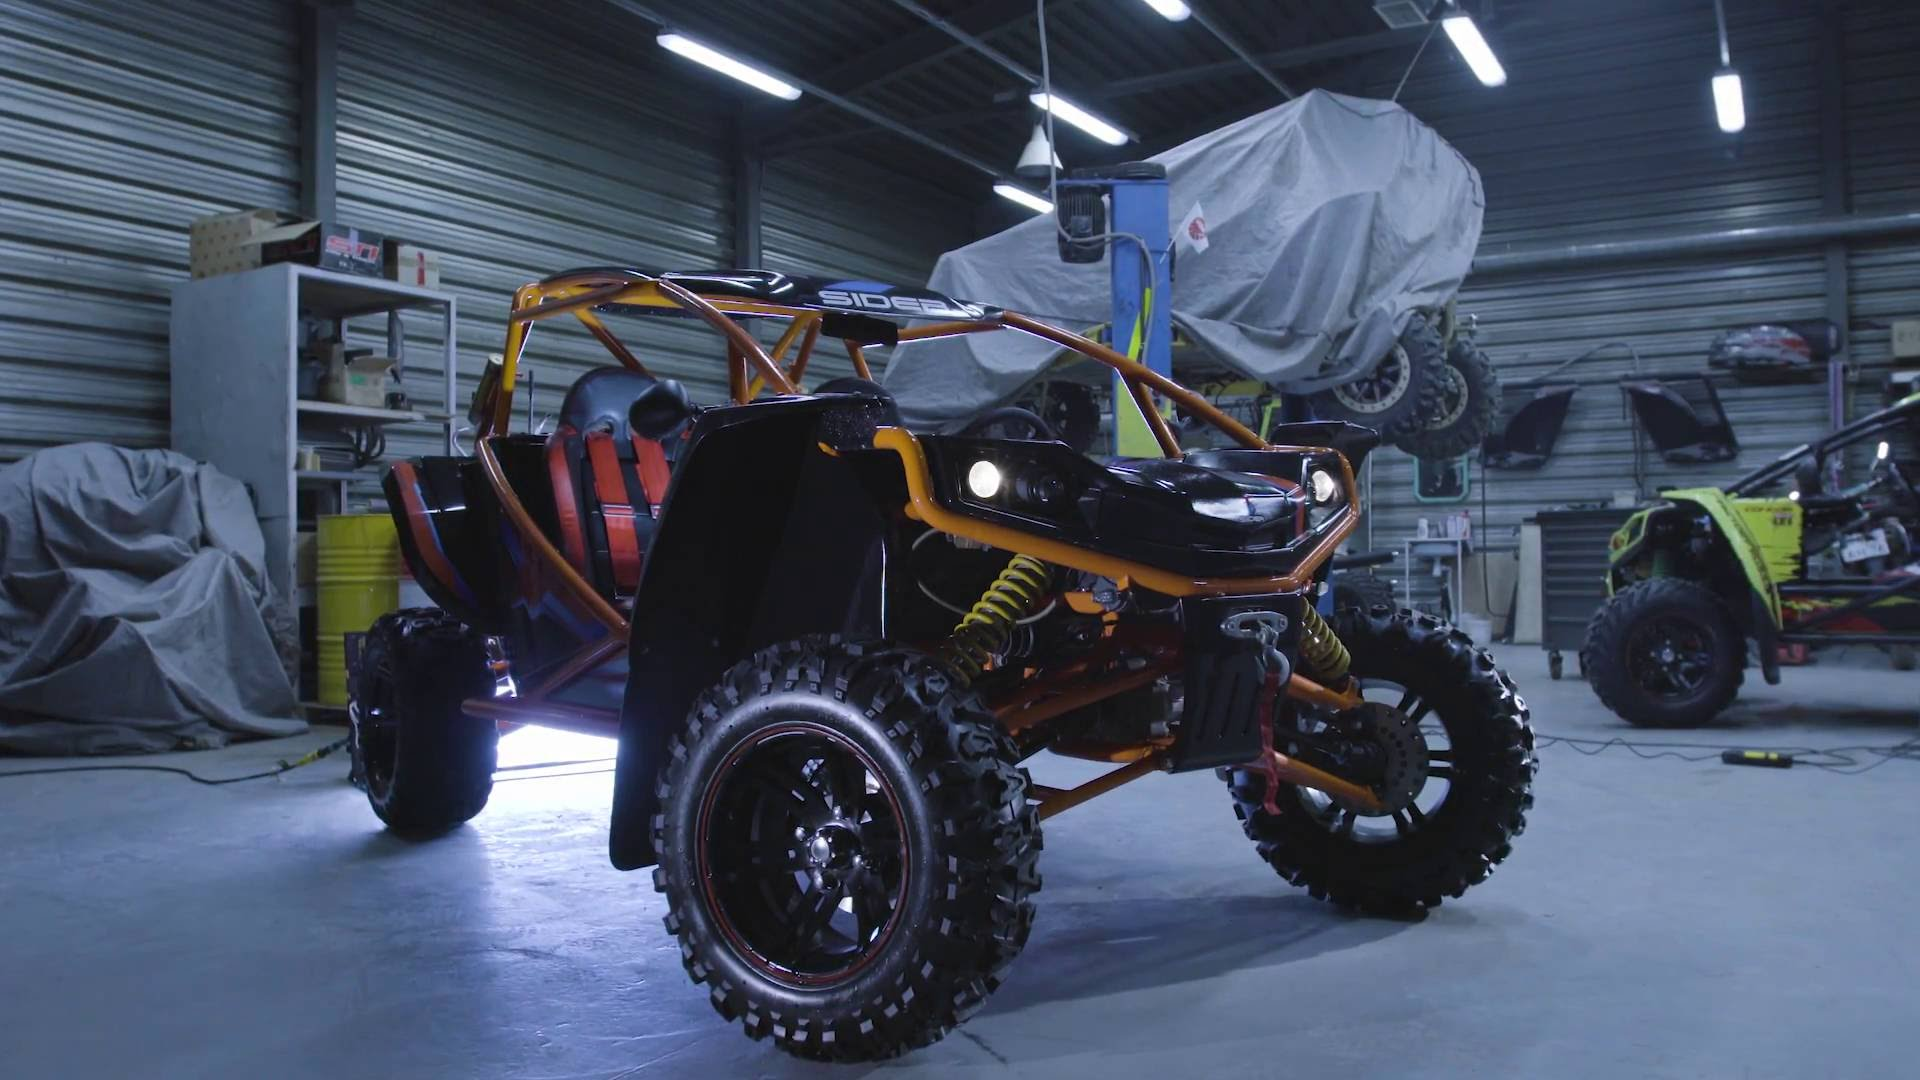 Buggy Sider Condor killer Polaris, Cfmoto и brp